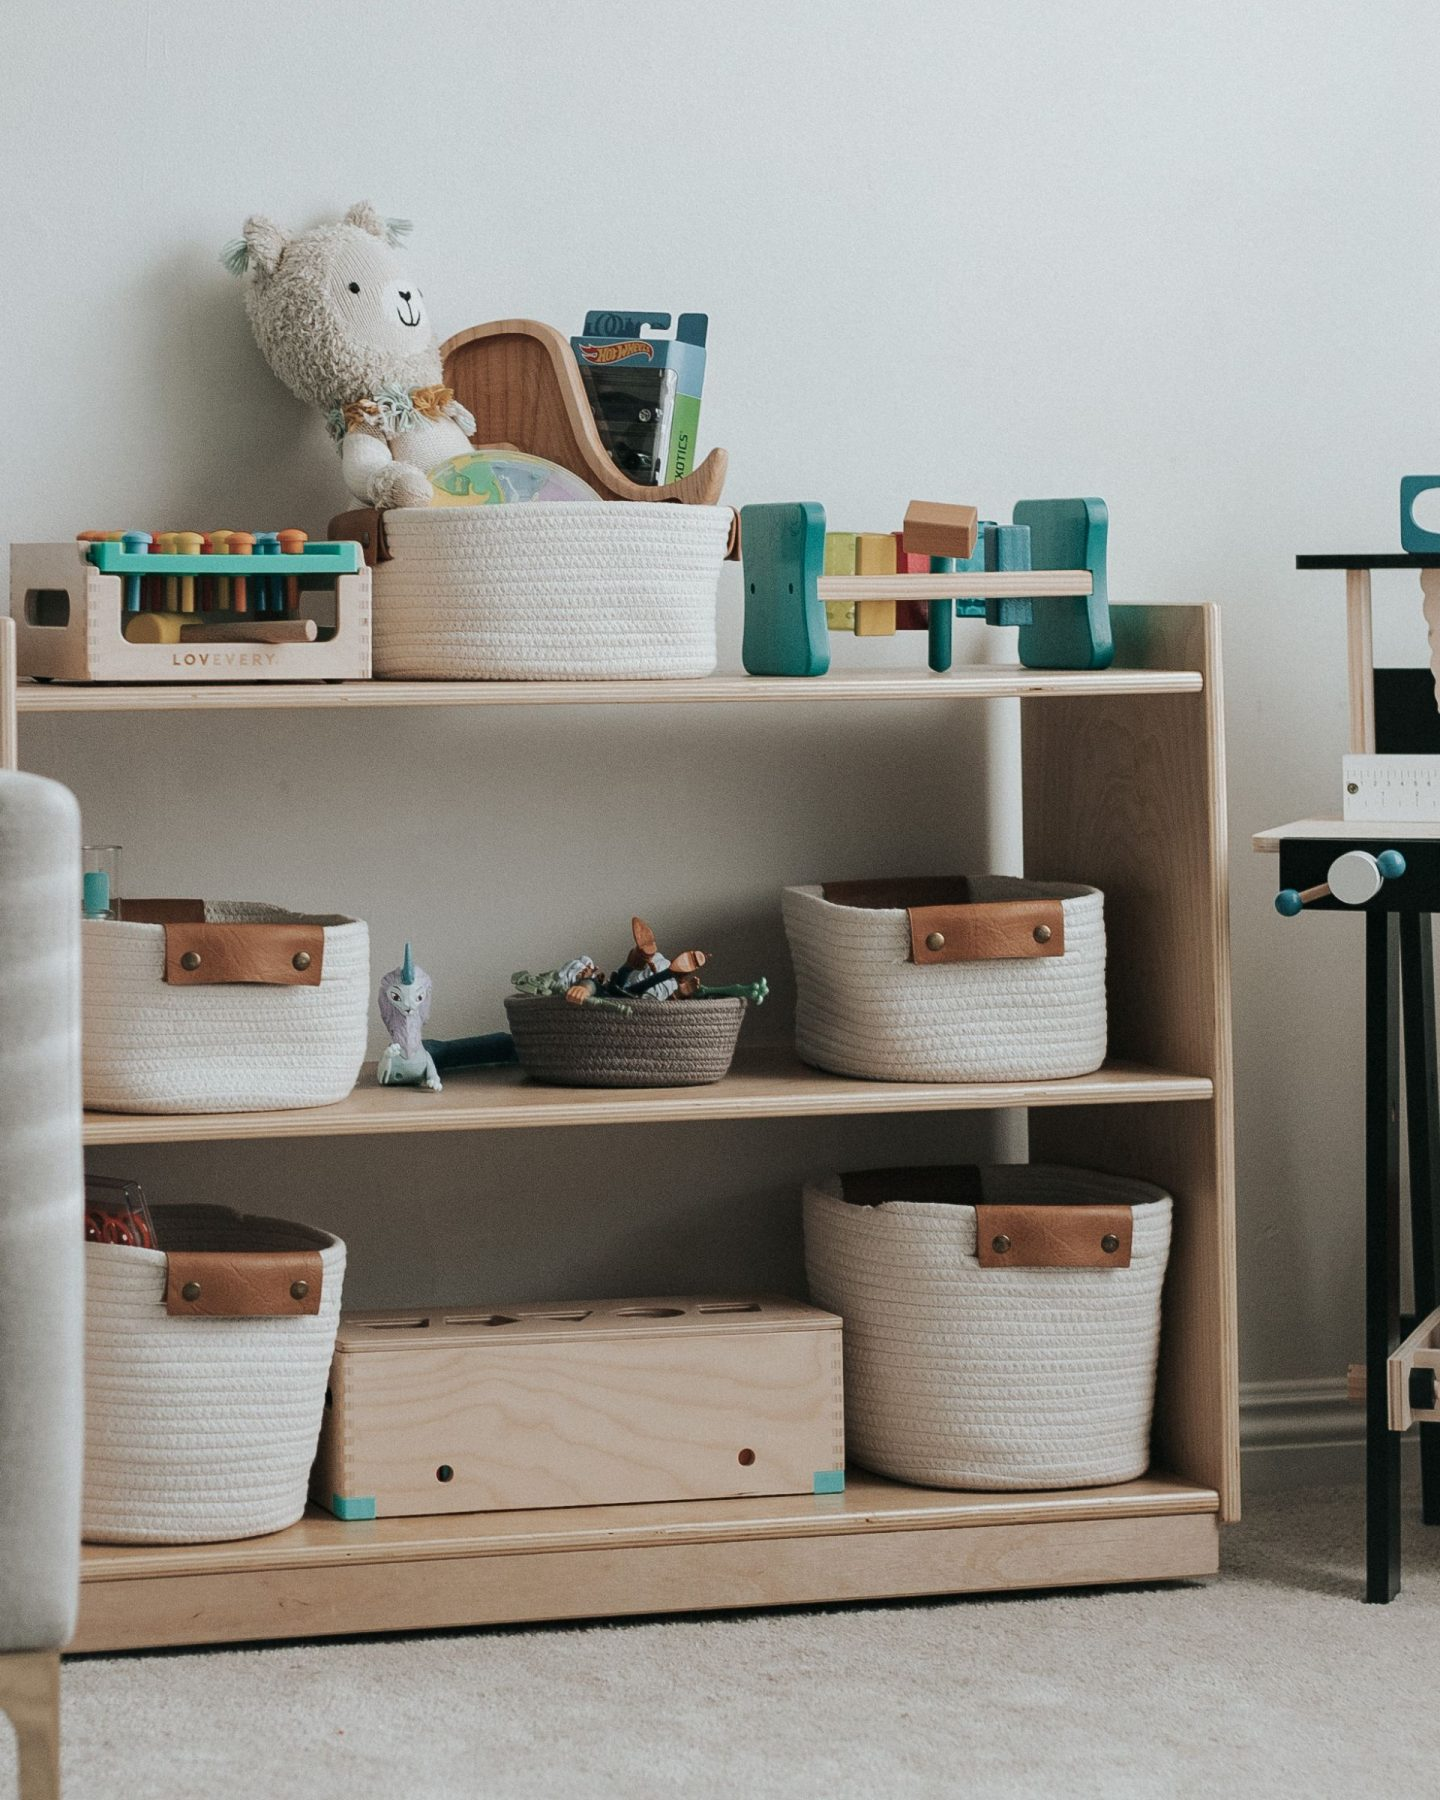 5 Tips for Successful Spring Cleaning and Decluttering